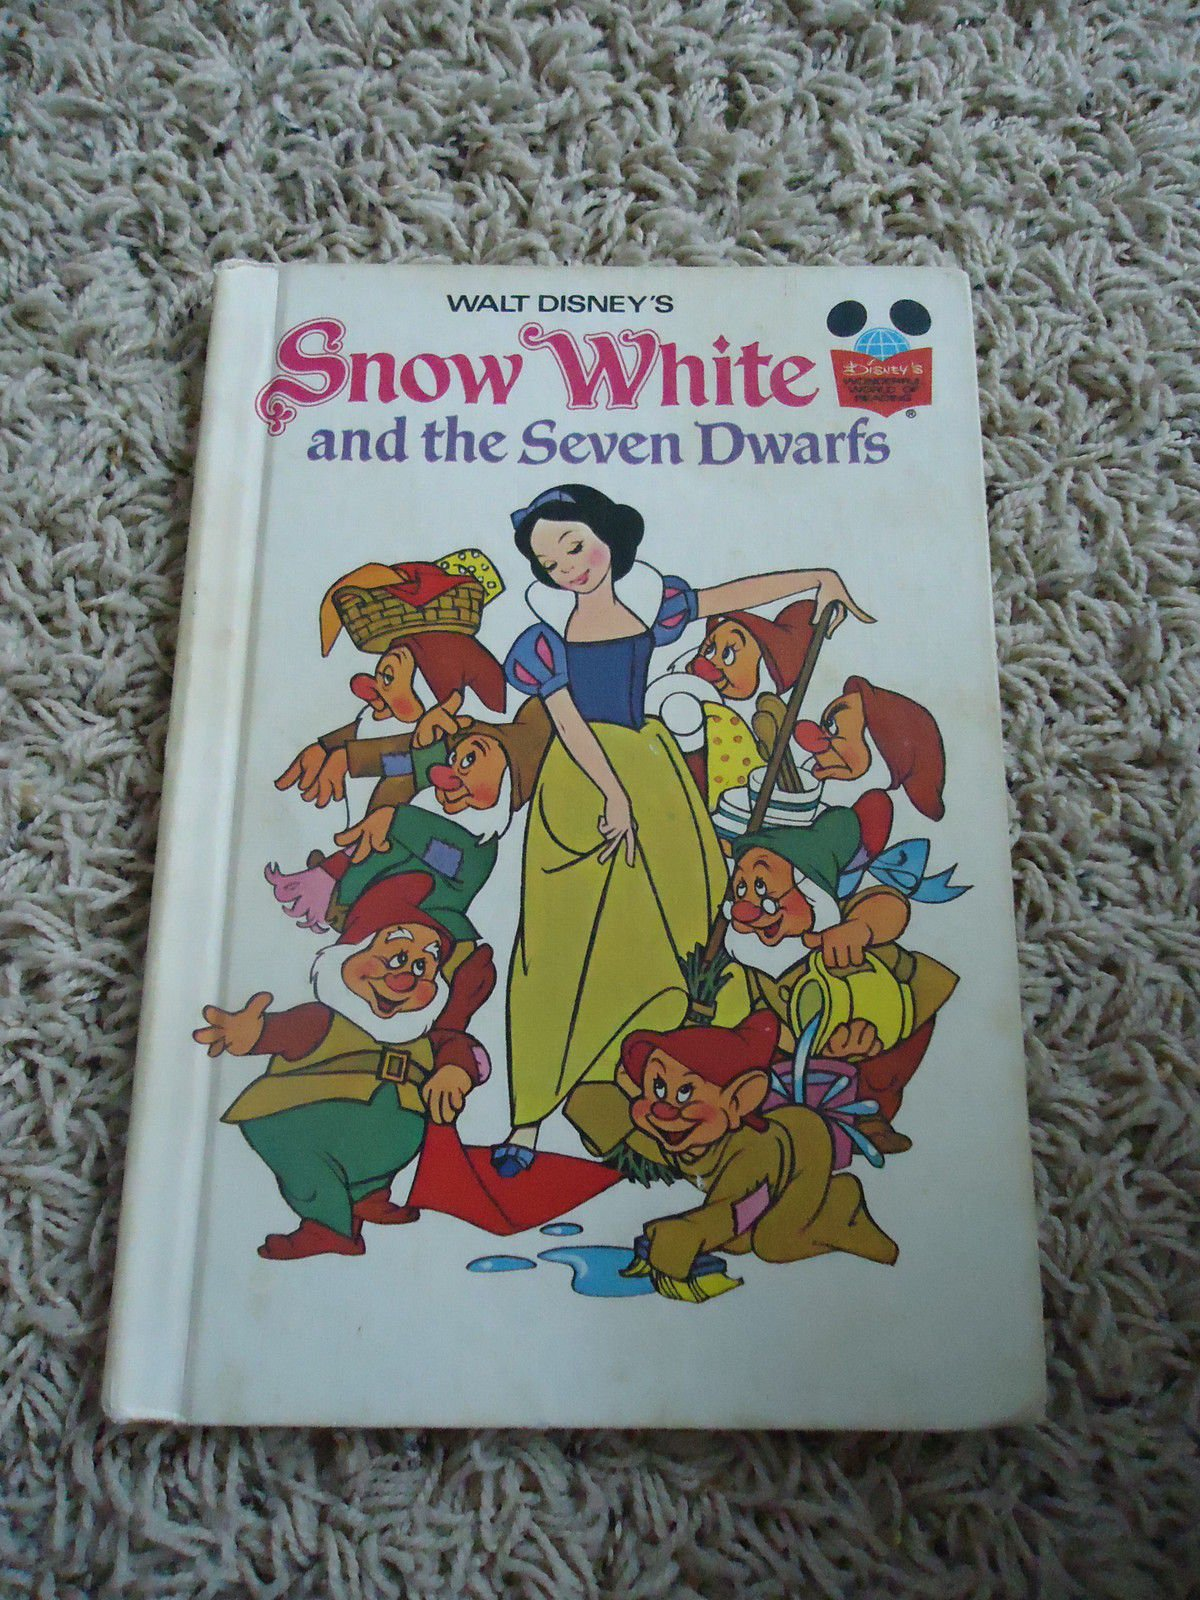 Authoritative point snow white finds a new home consider, that